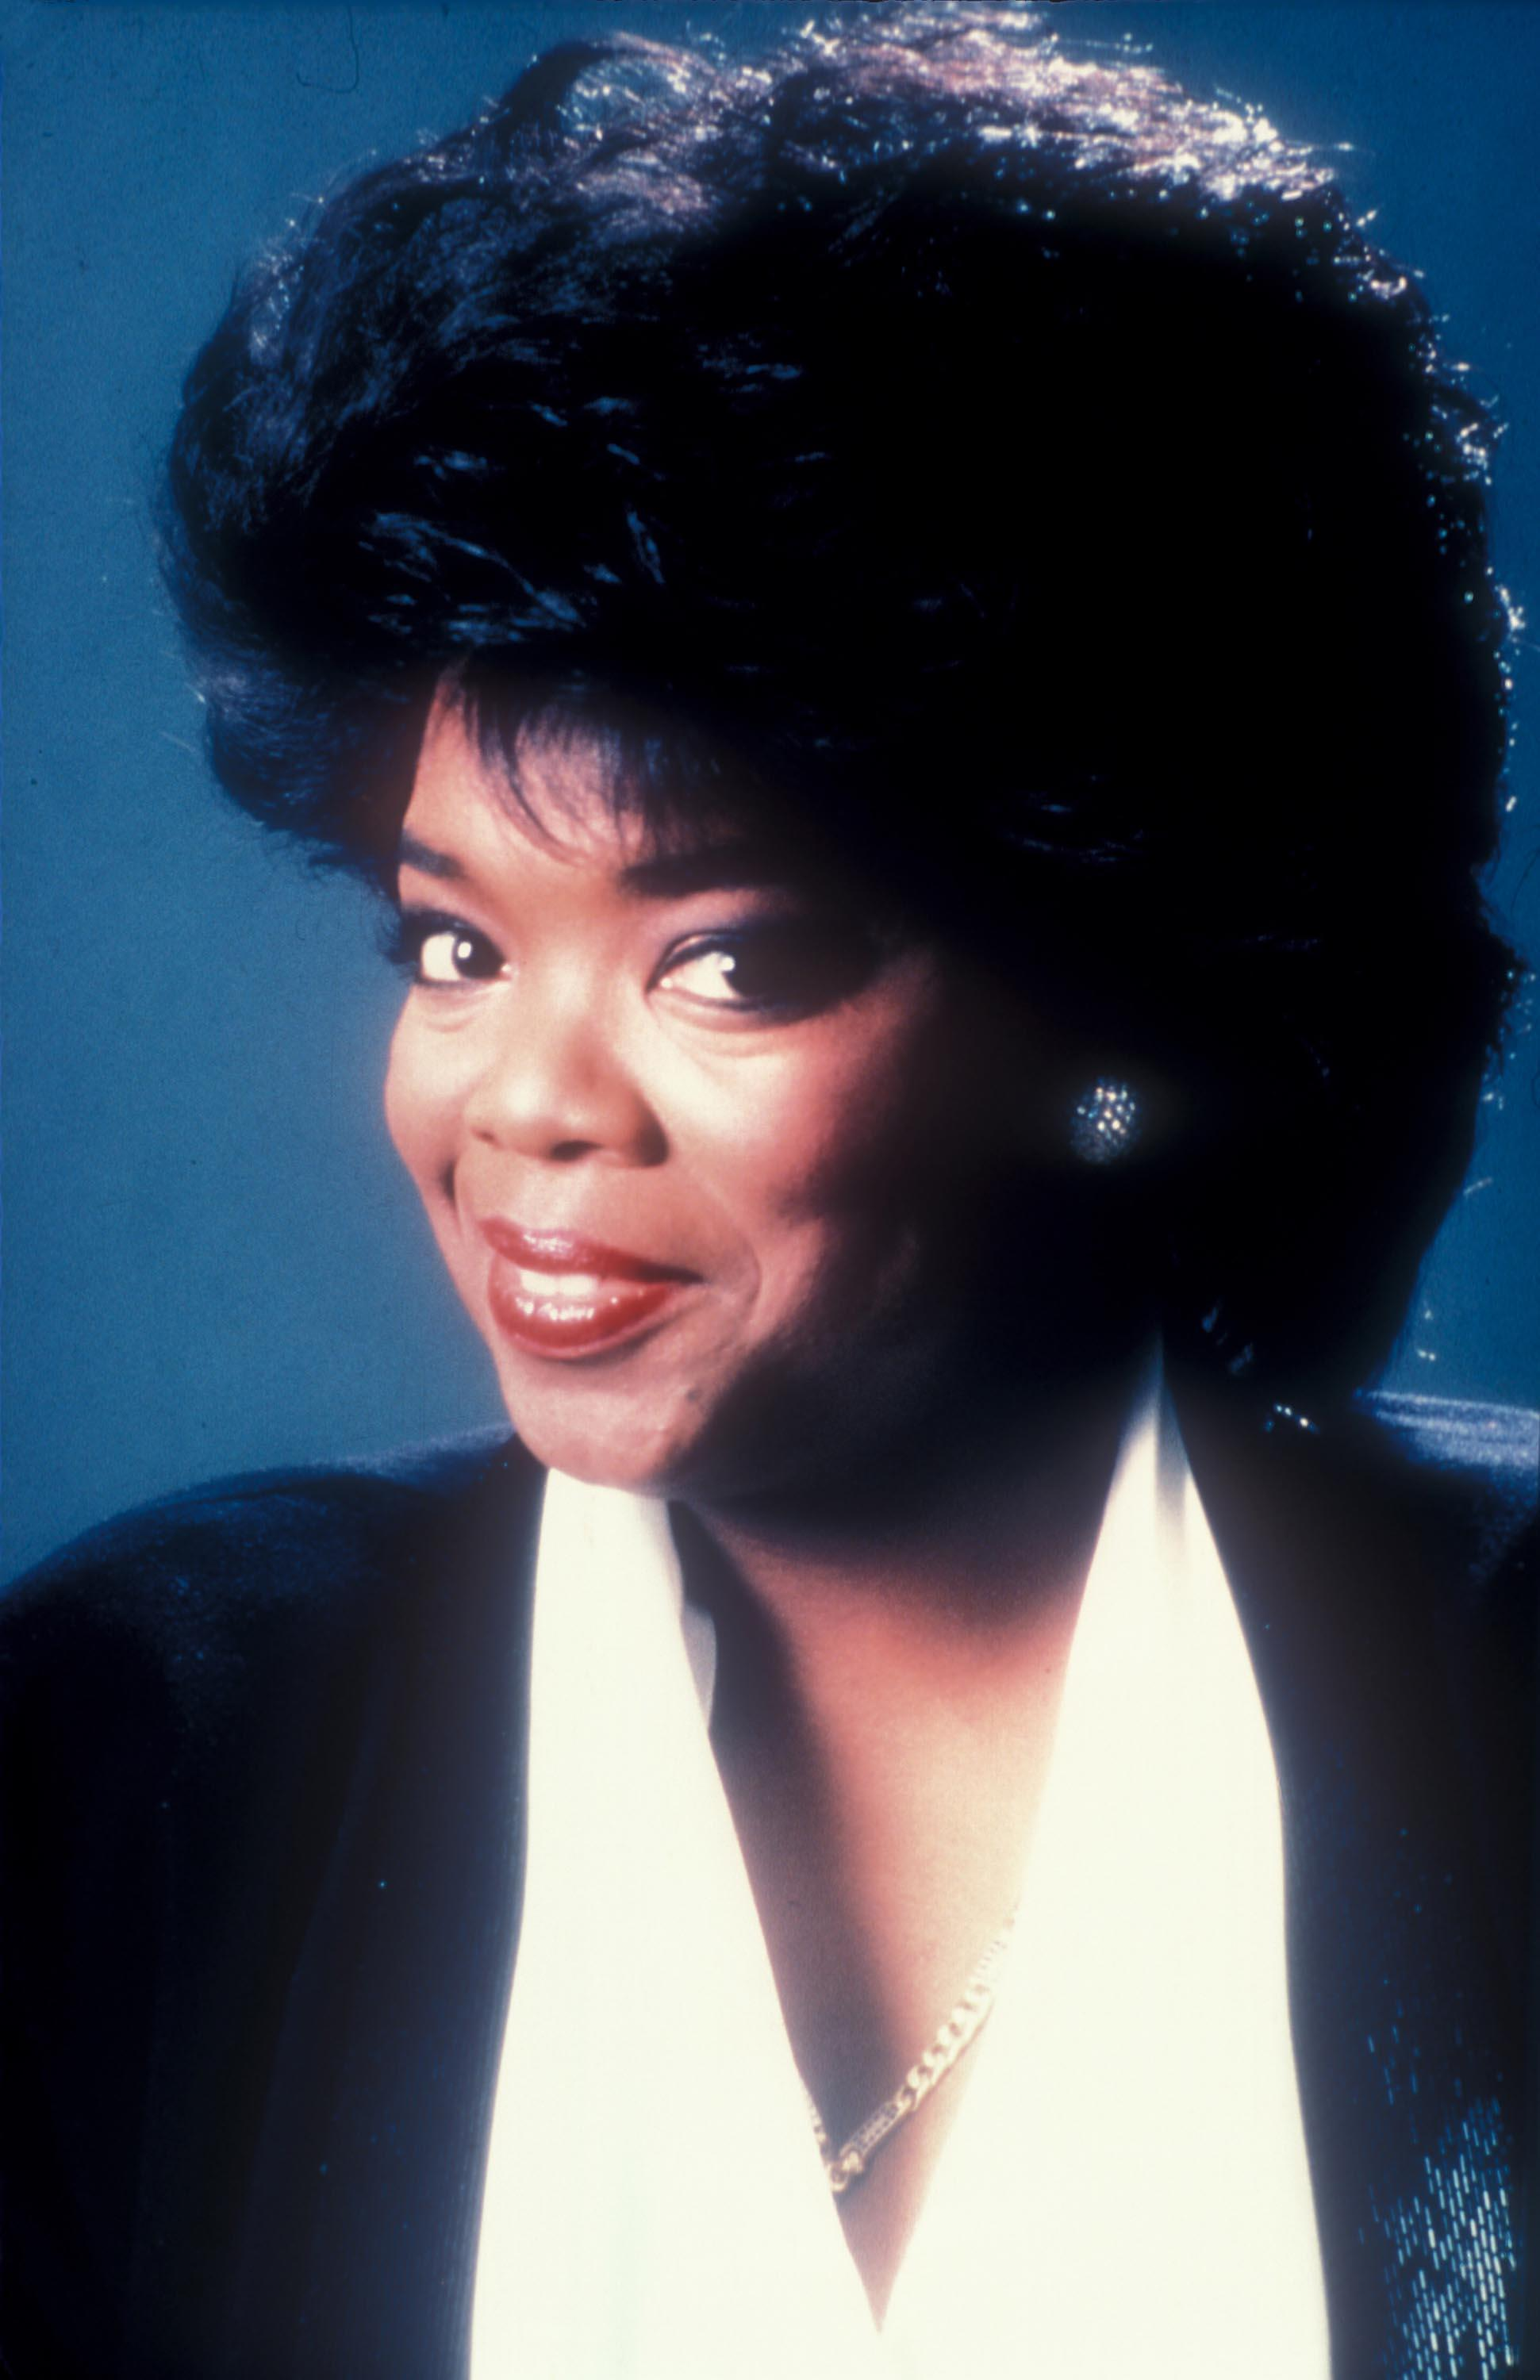 Farewell to Oprah and to hairstyles of the past